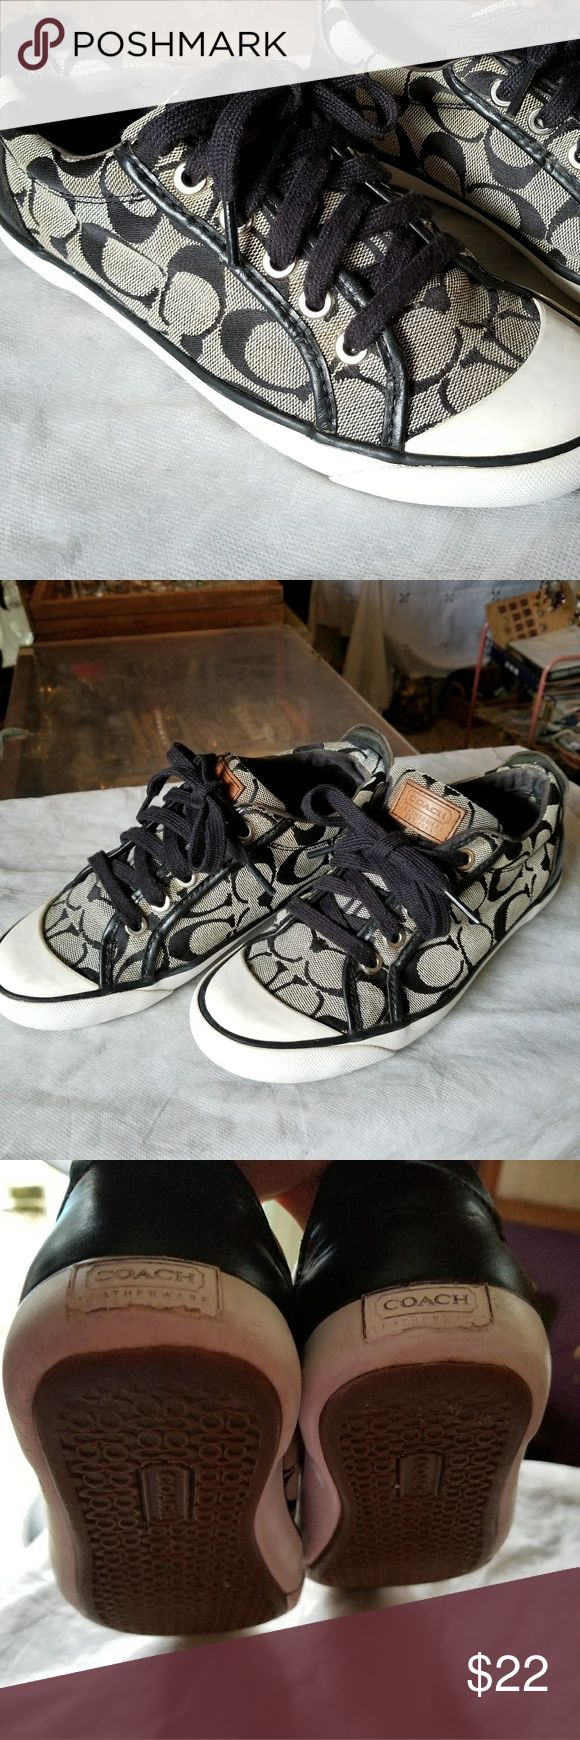 COACH SNEAKERS Coach sneaker with signs of usage. Coach Shoes